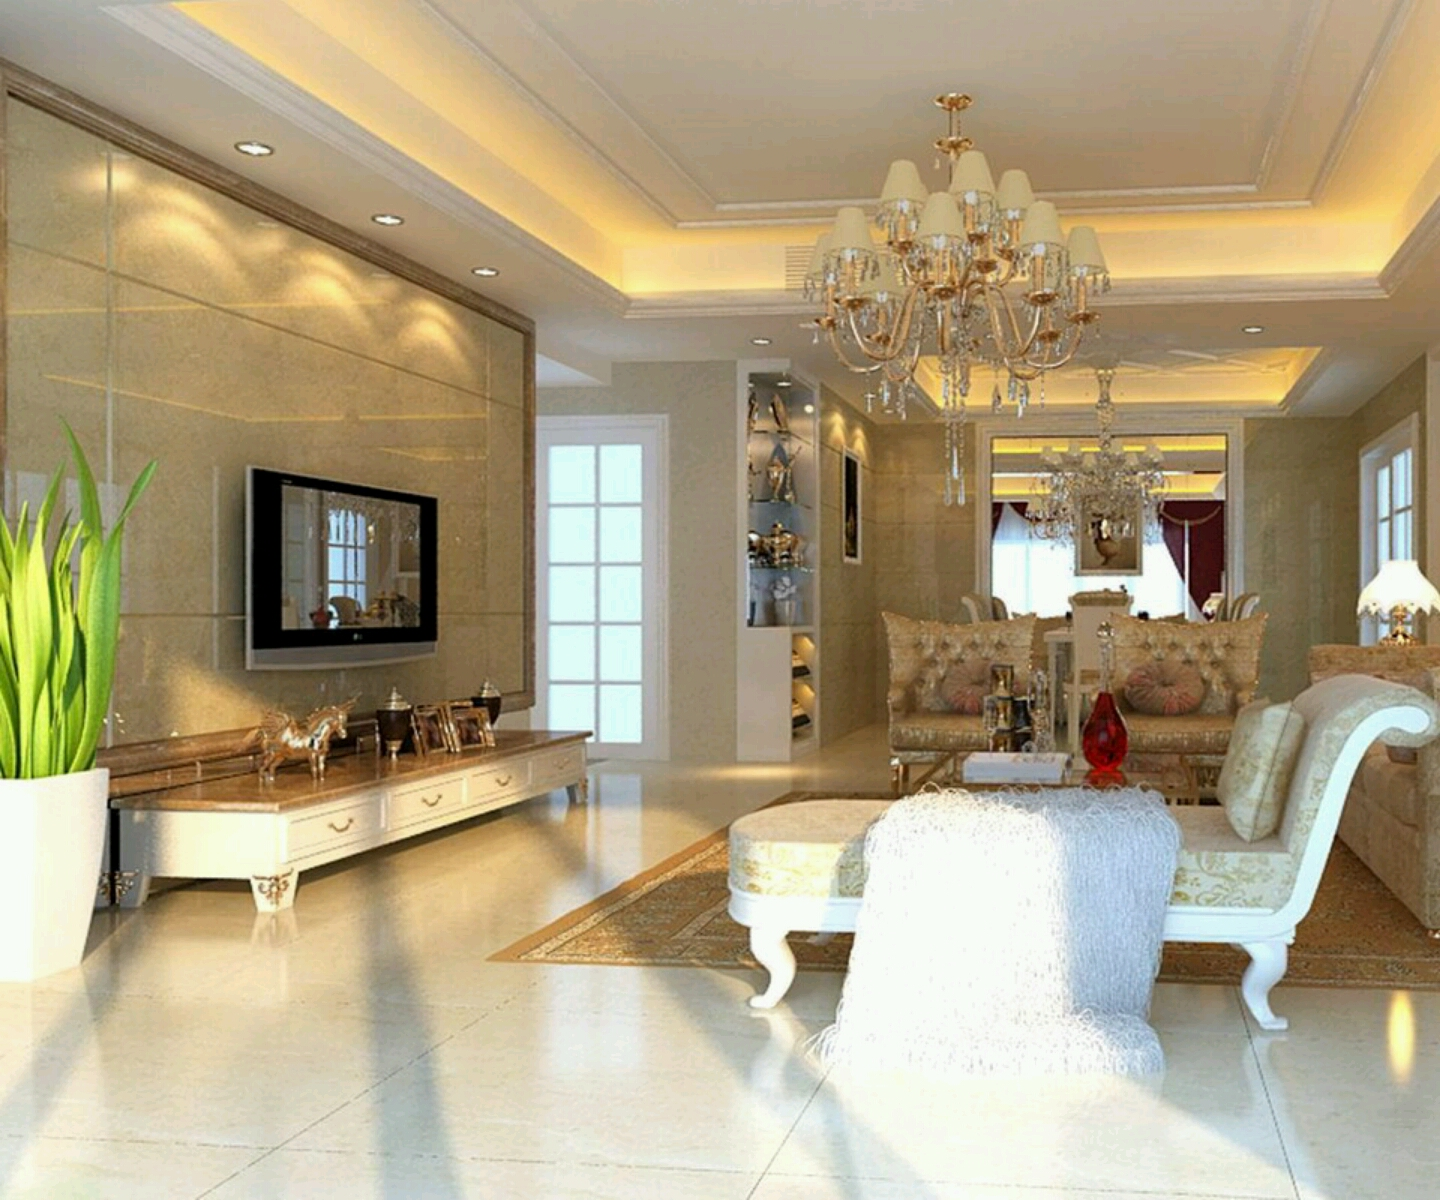 Home decor 2012 luxury homes interior decoration living for Home drawing room design